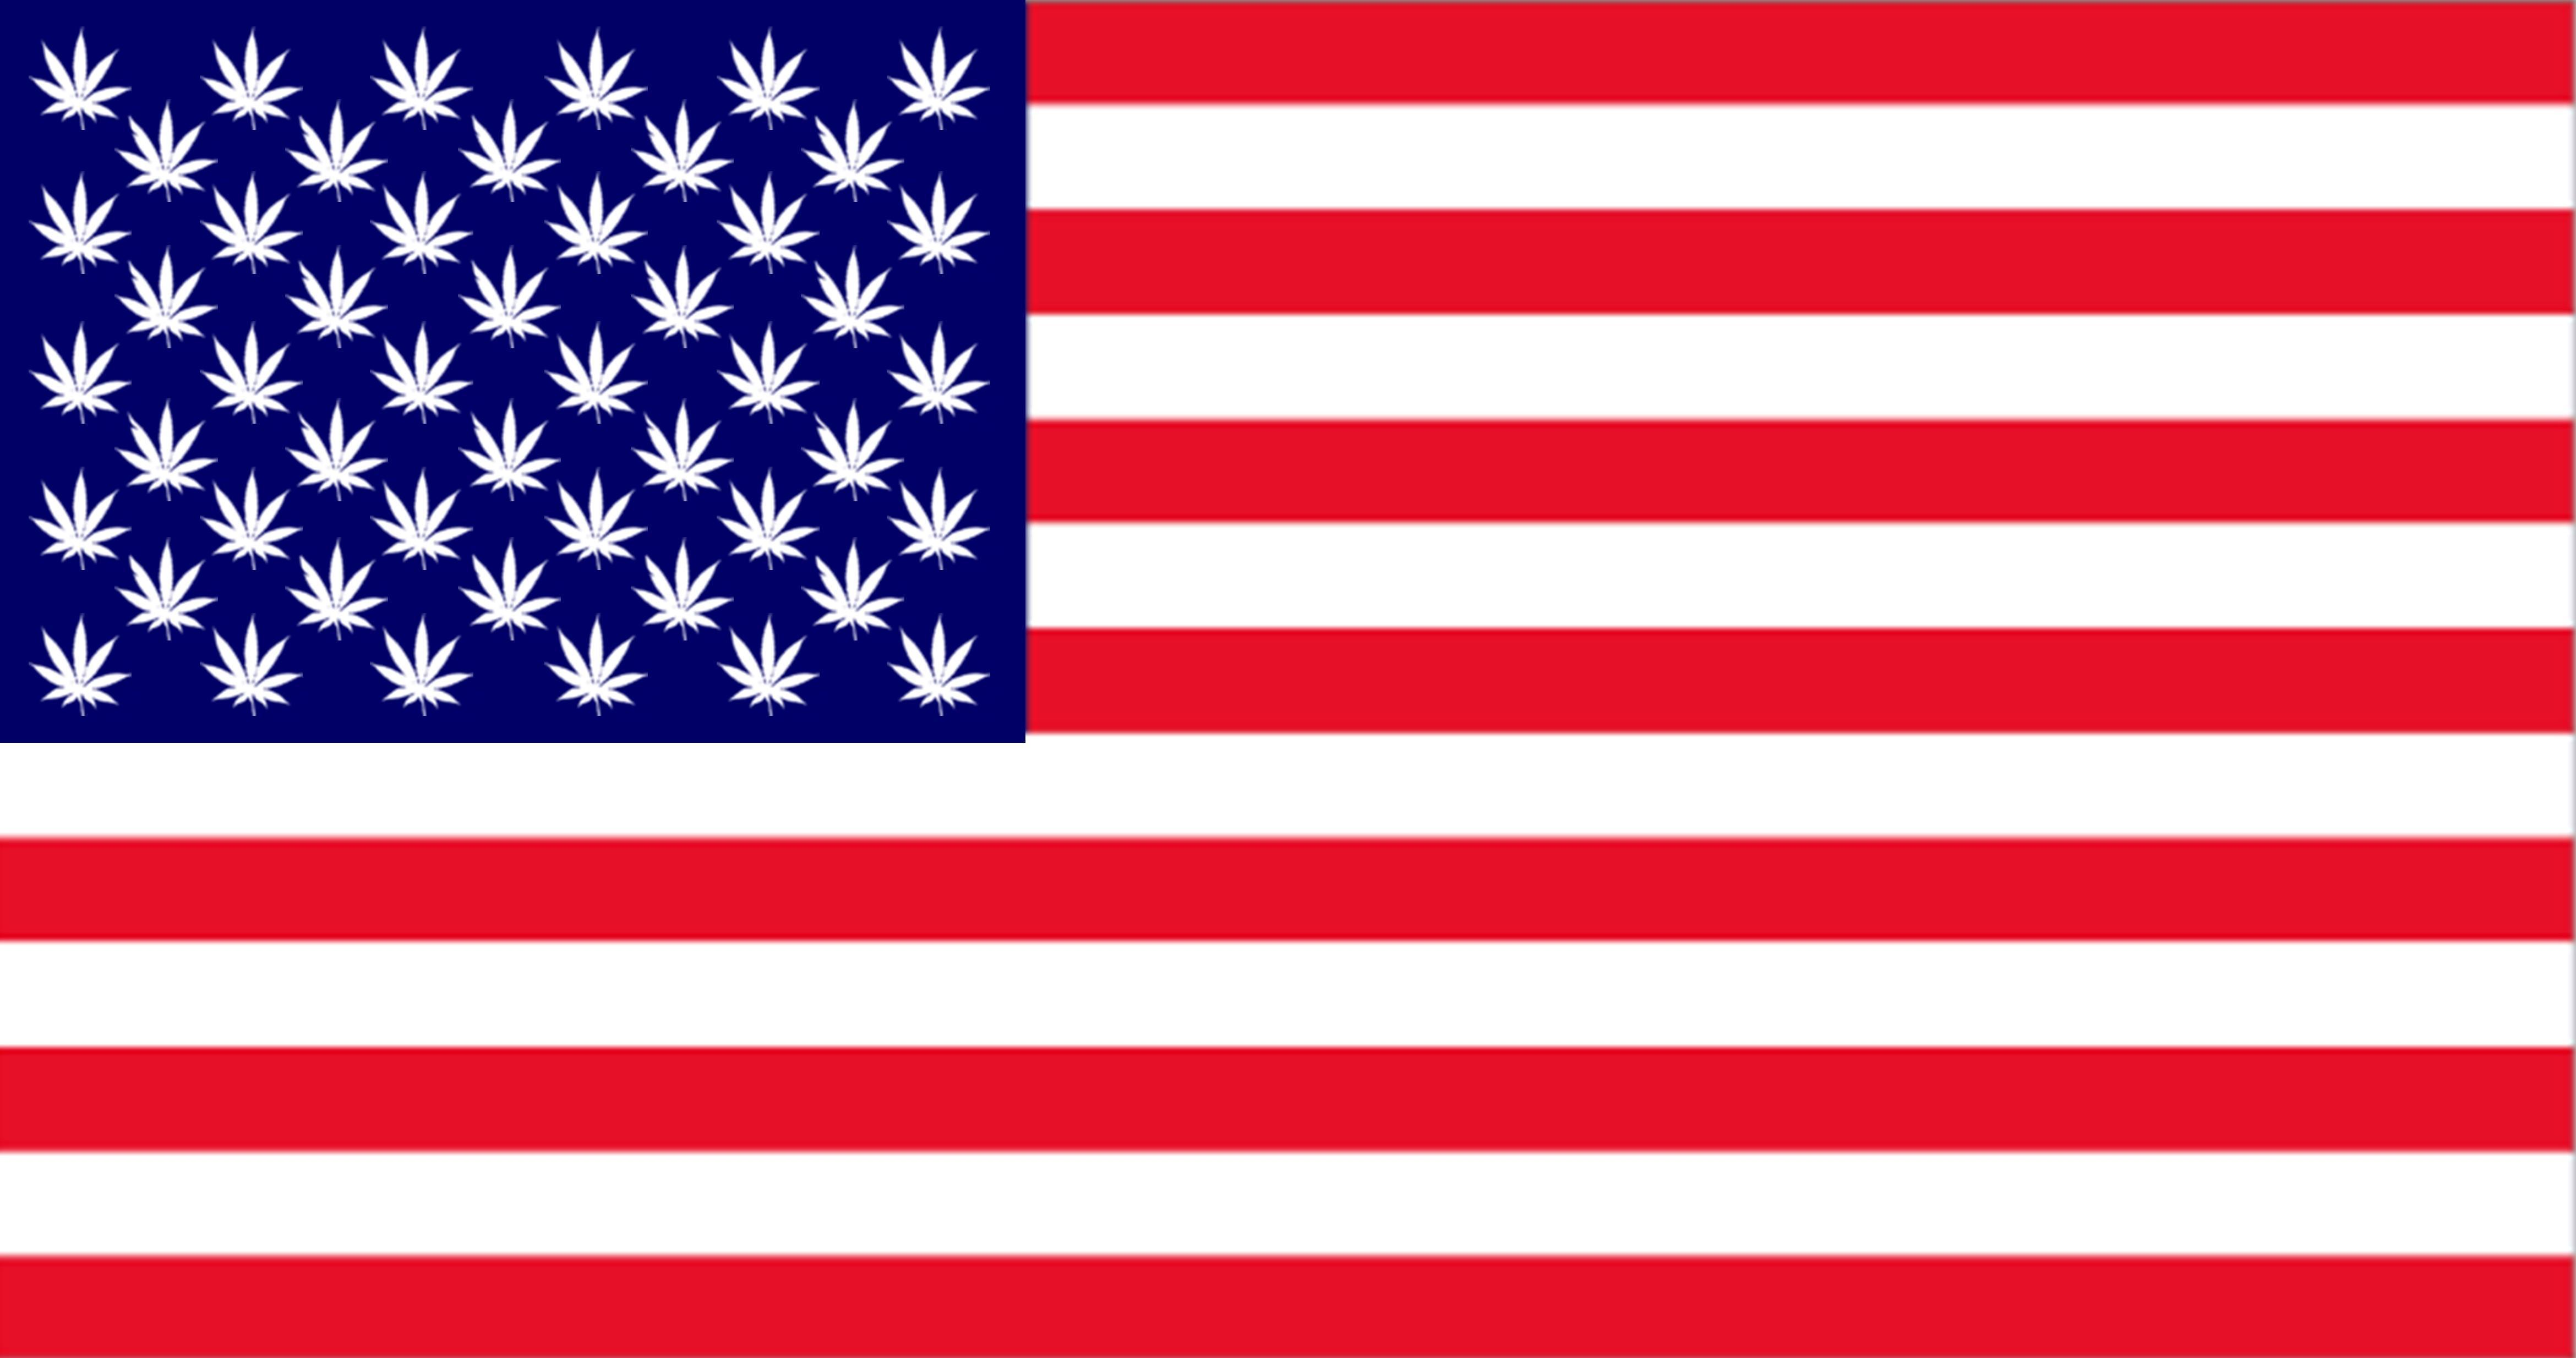 Image of US flag with pot leaves rather than stars